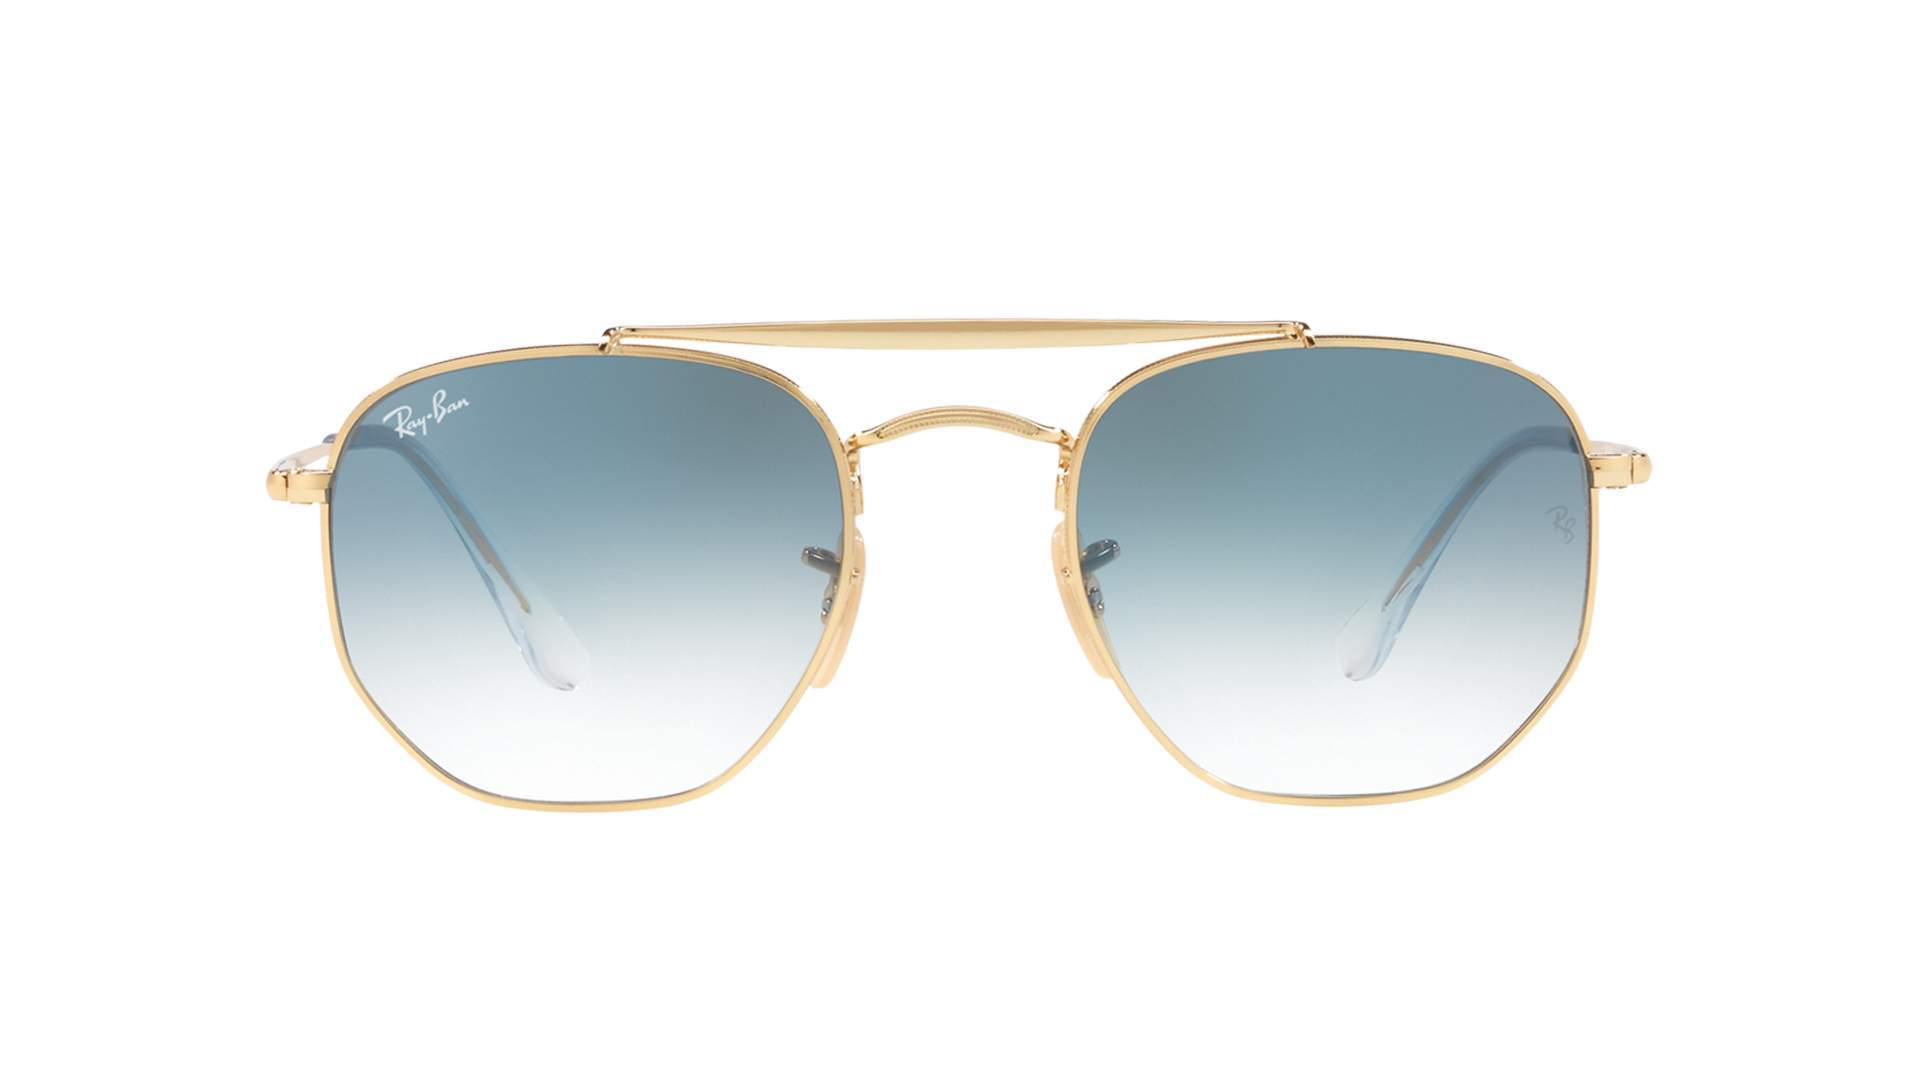 Sunglasses Ray-Ban Marshal Gold RB3648 001 3F 54-21 Large Gradient 67a3b48ac5